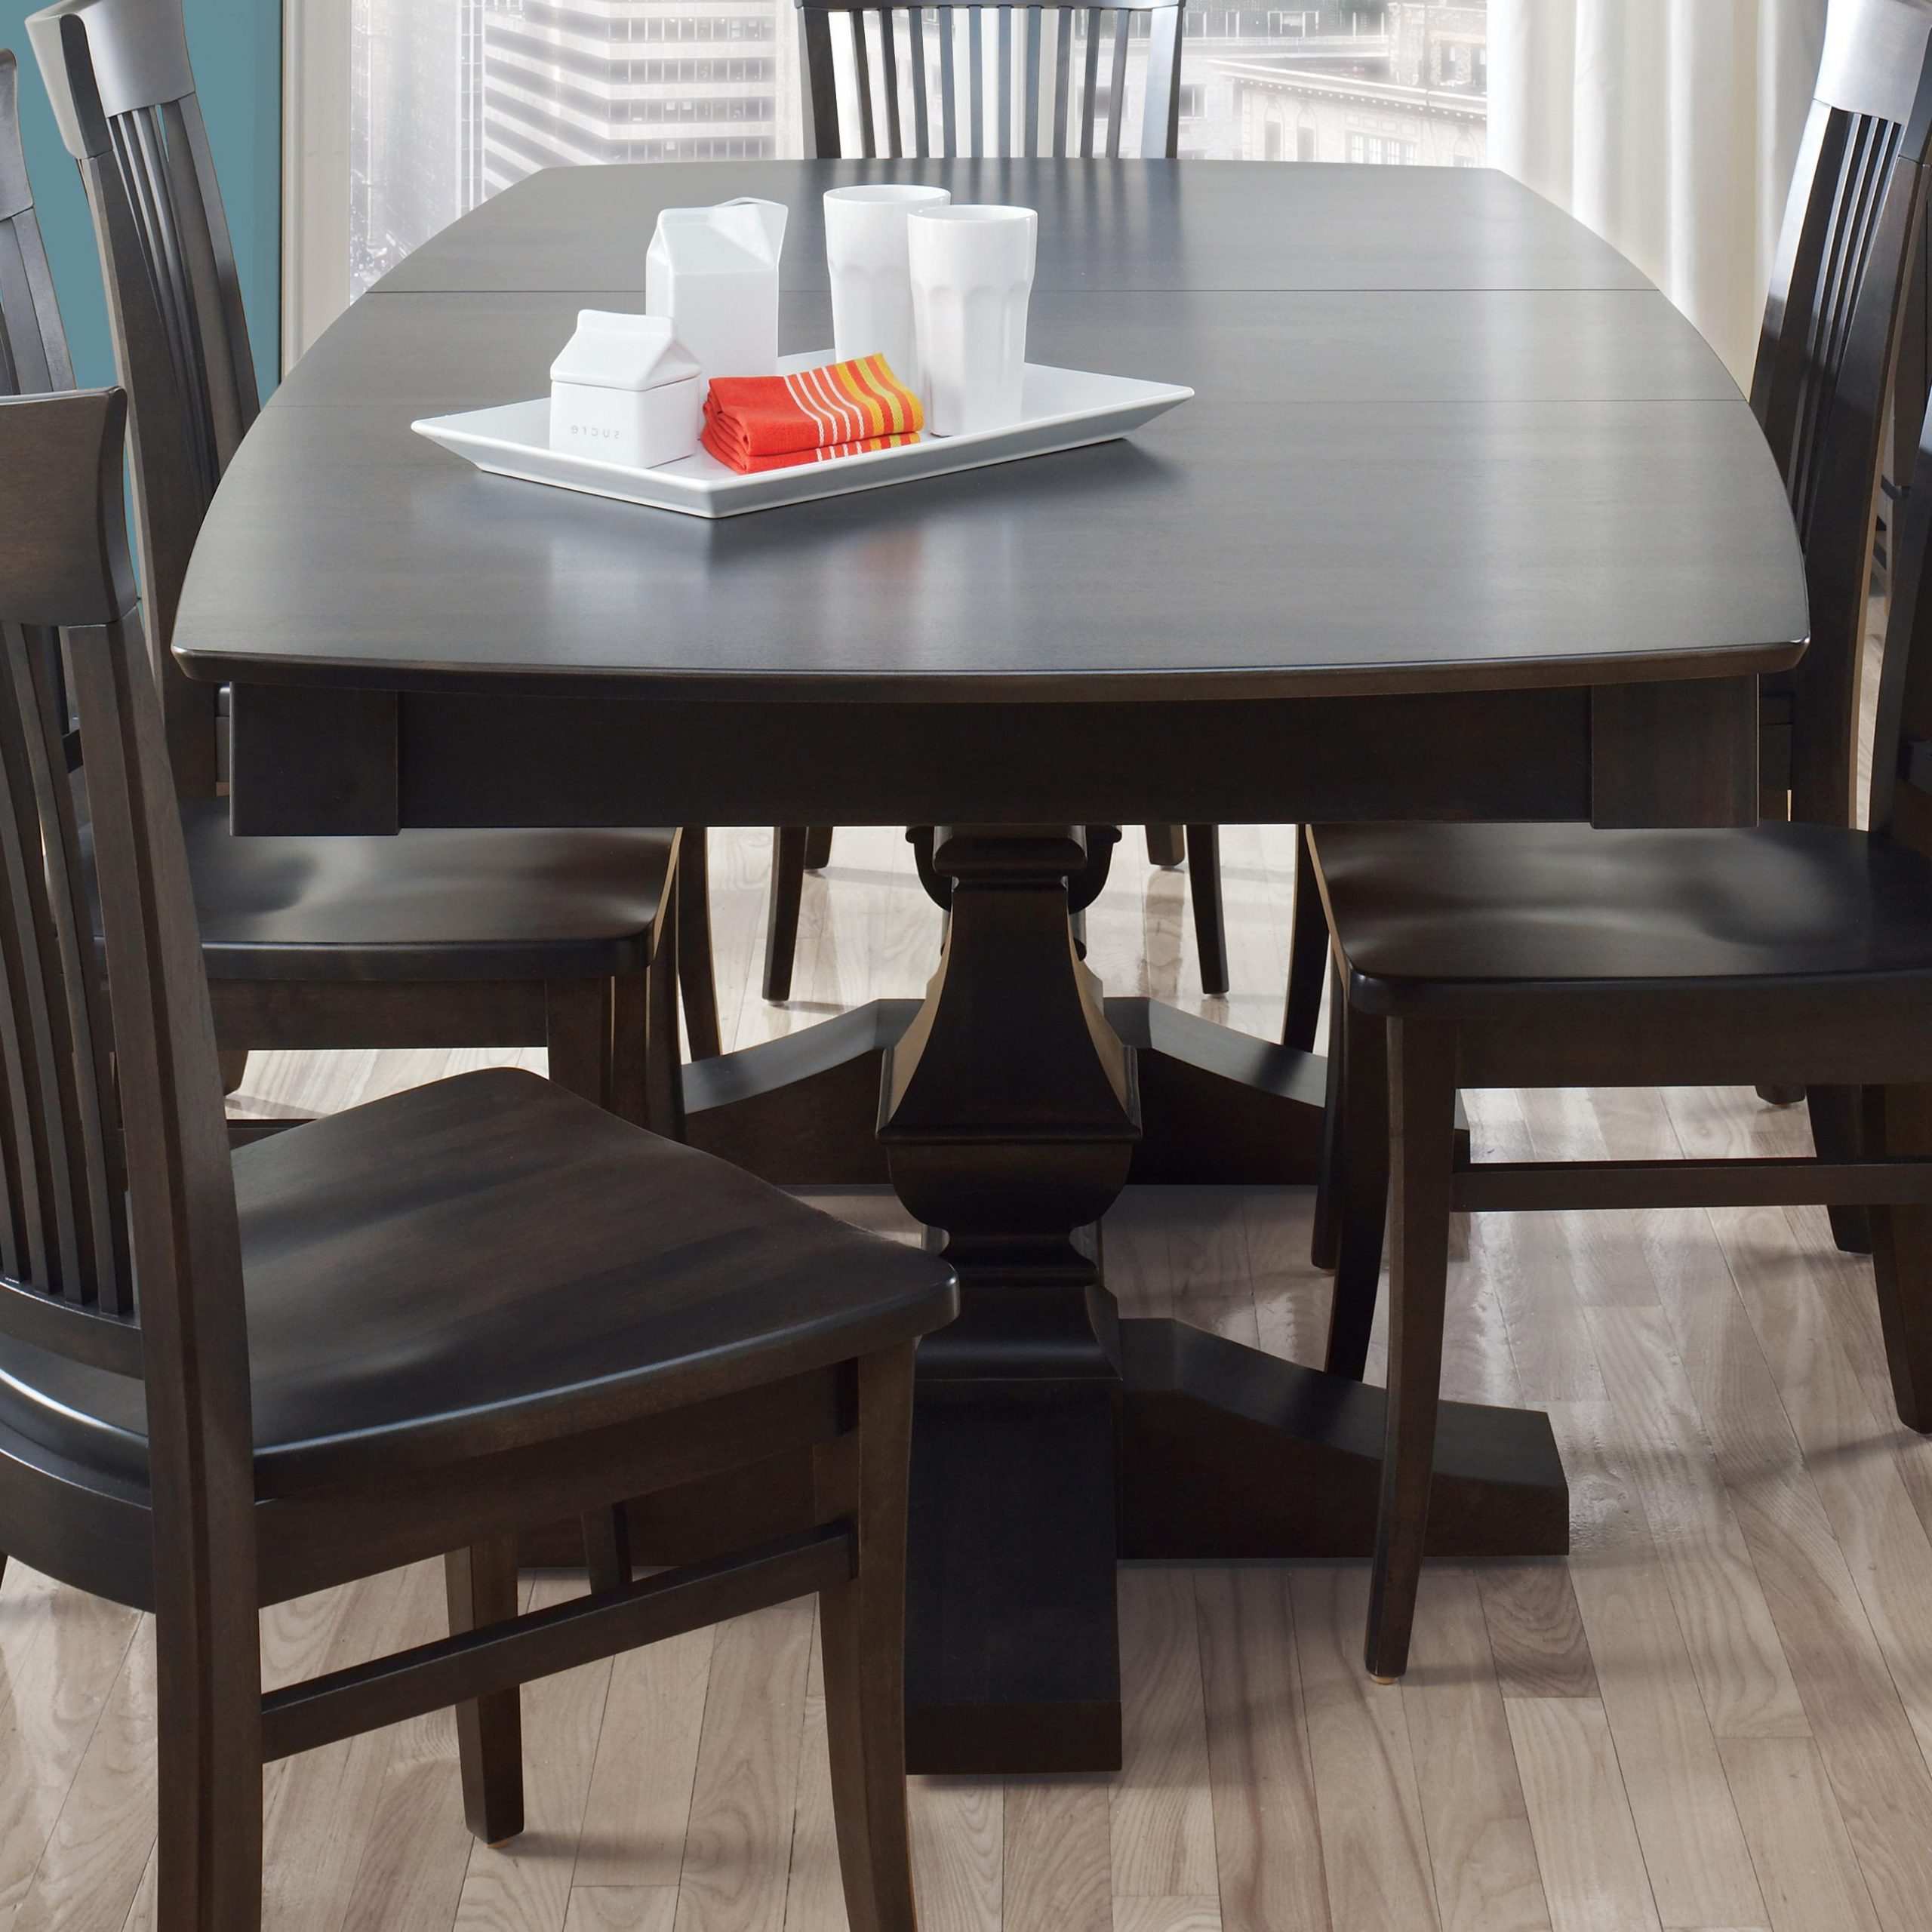 Canadel Custom Dining Customizable Boat Shape Table With With Regard To Widely Used Bistro Transitional 4 Seating Square Dining Tables (View 12 of 24)